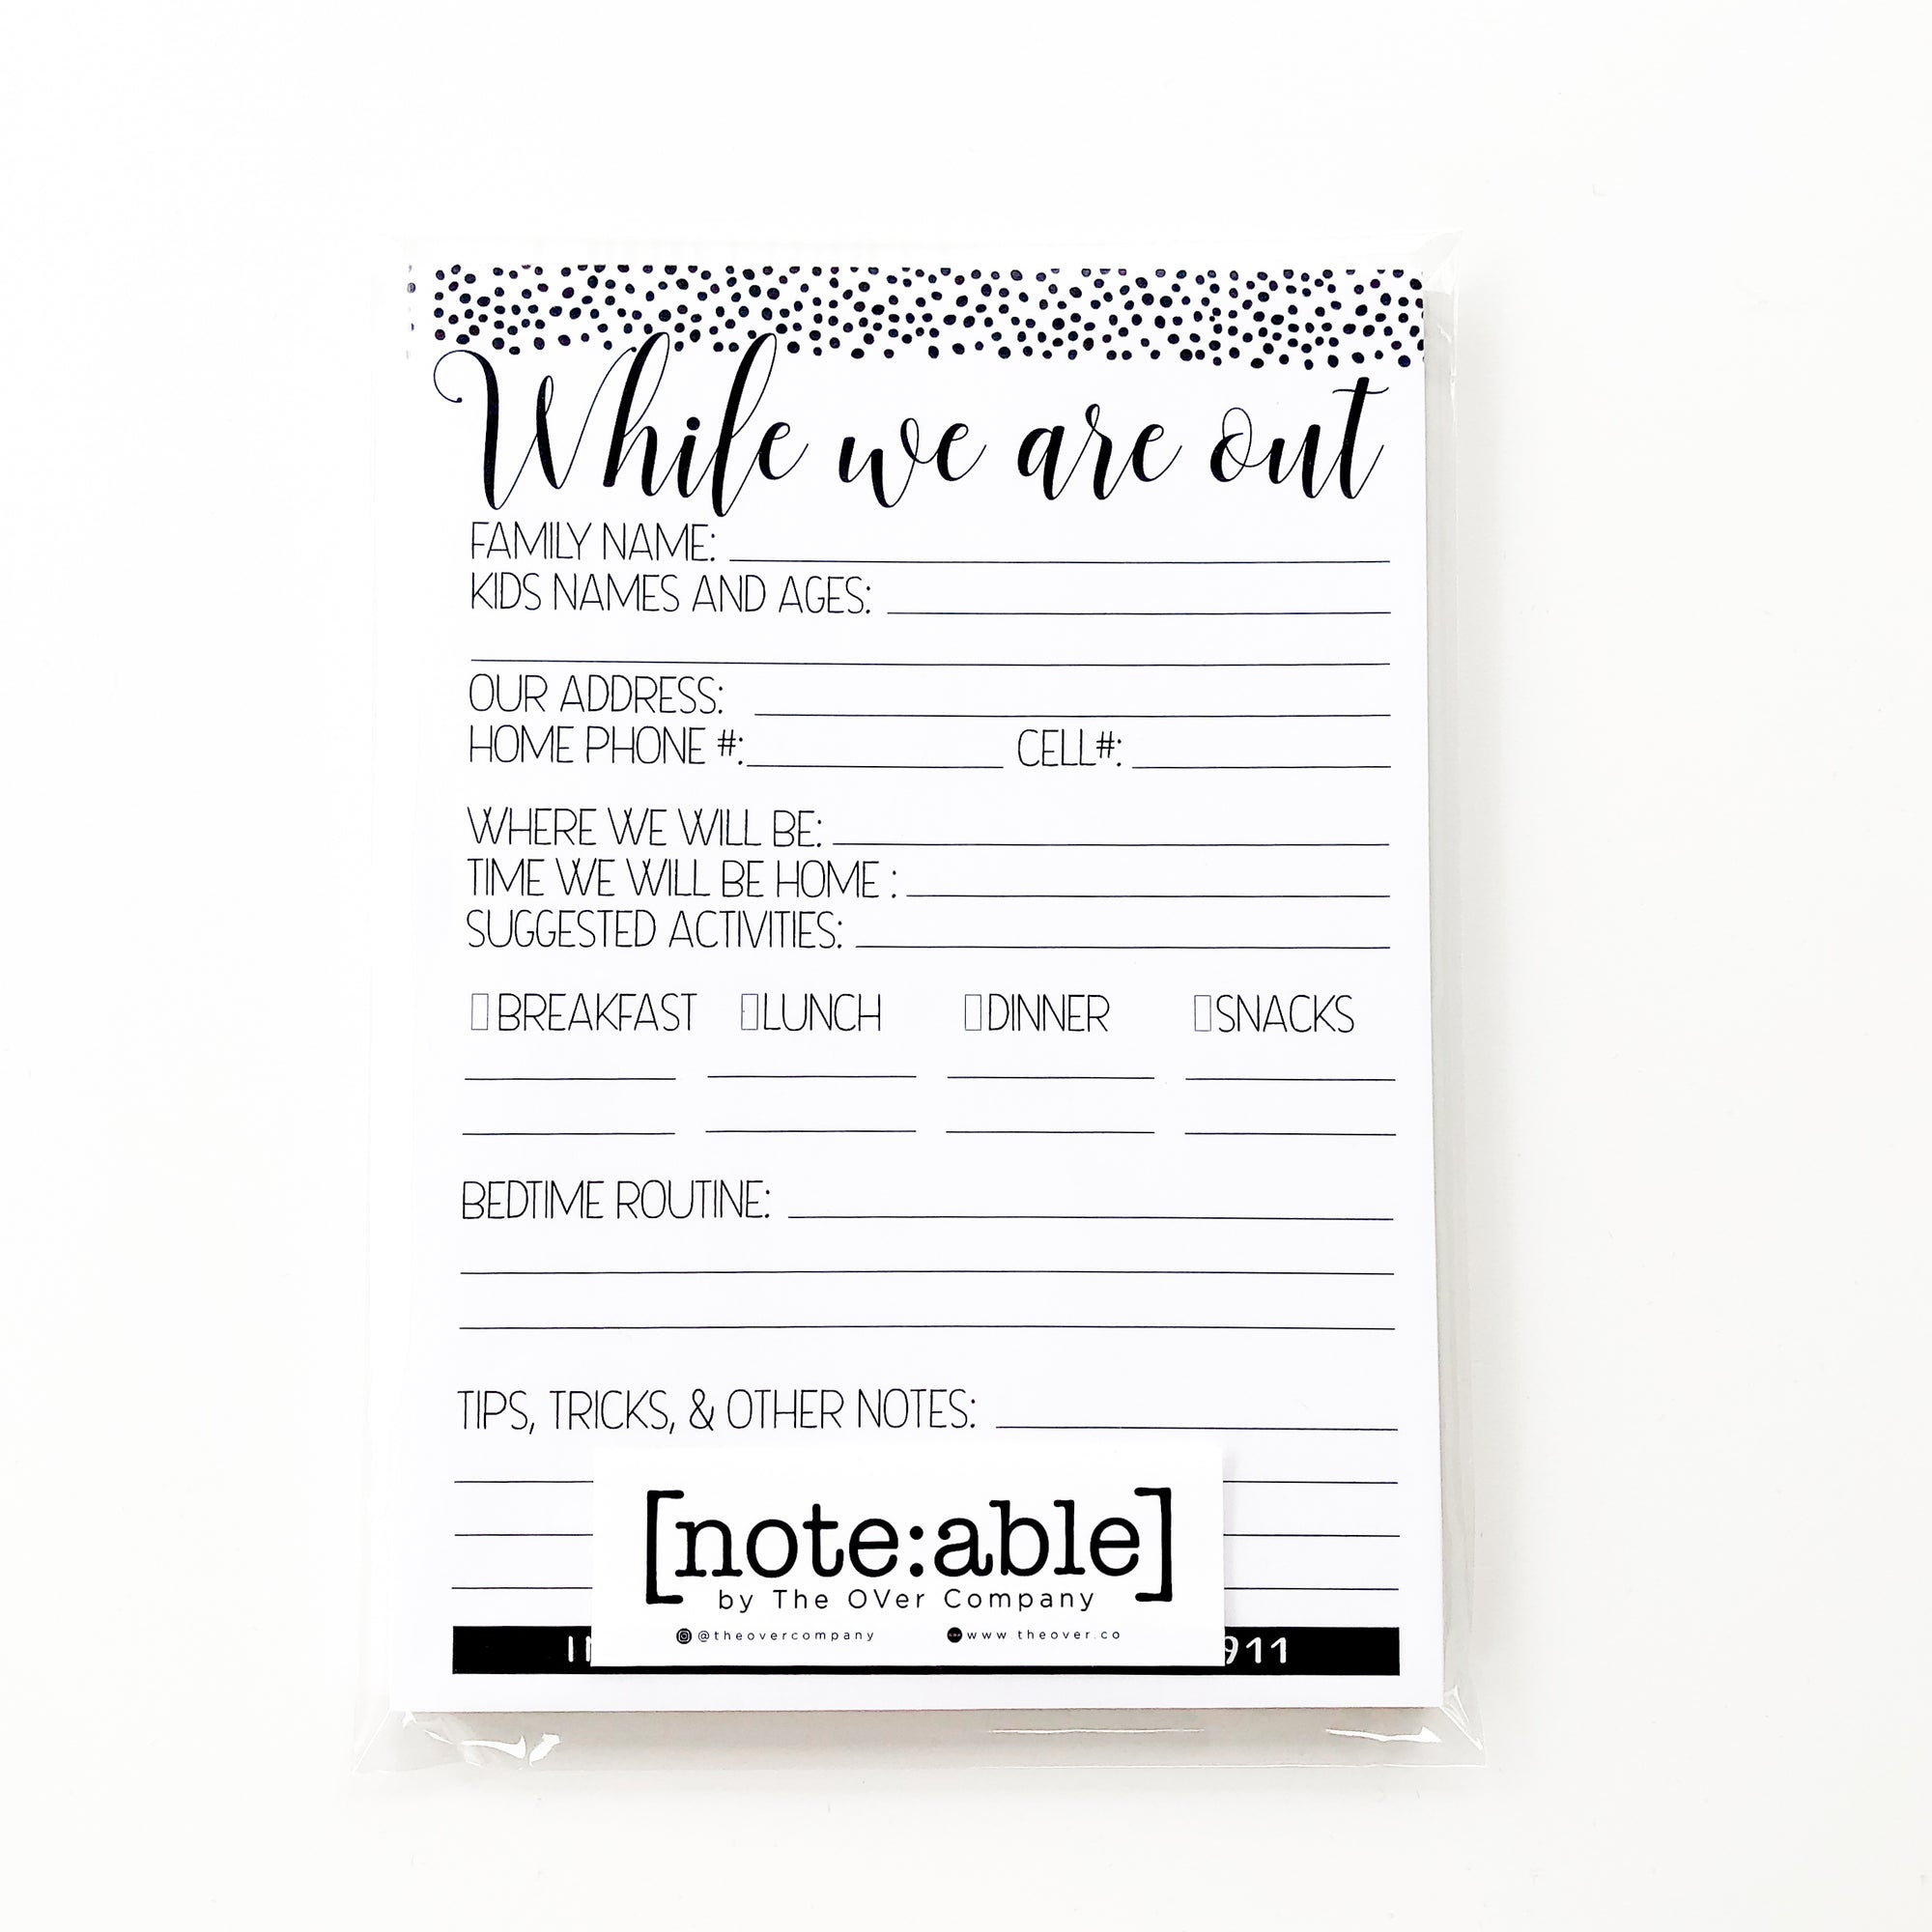 [note:able] - Monochrome Babysitter Note Pads